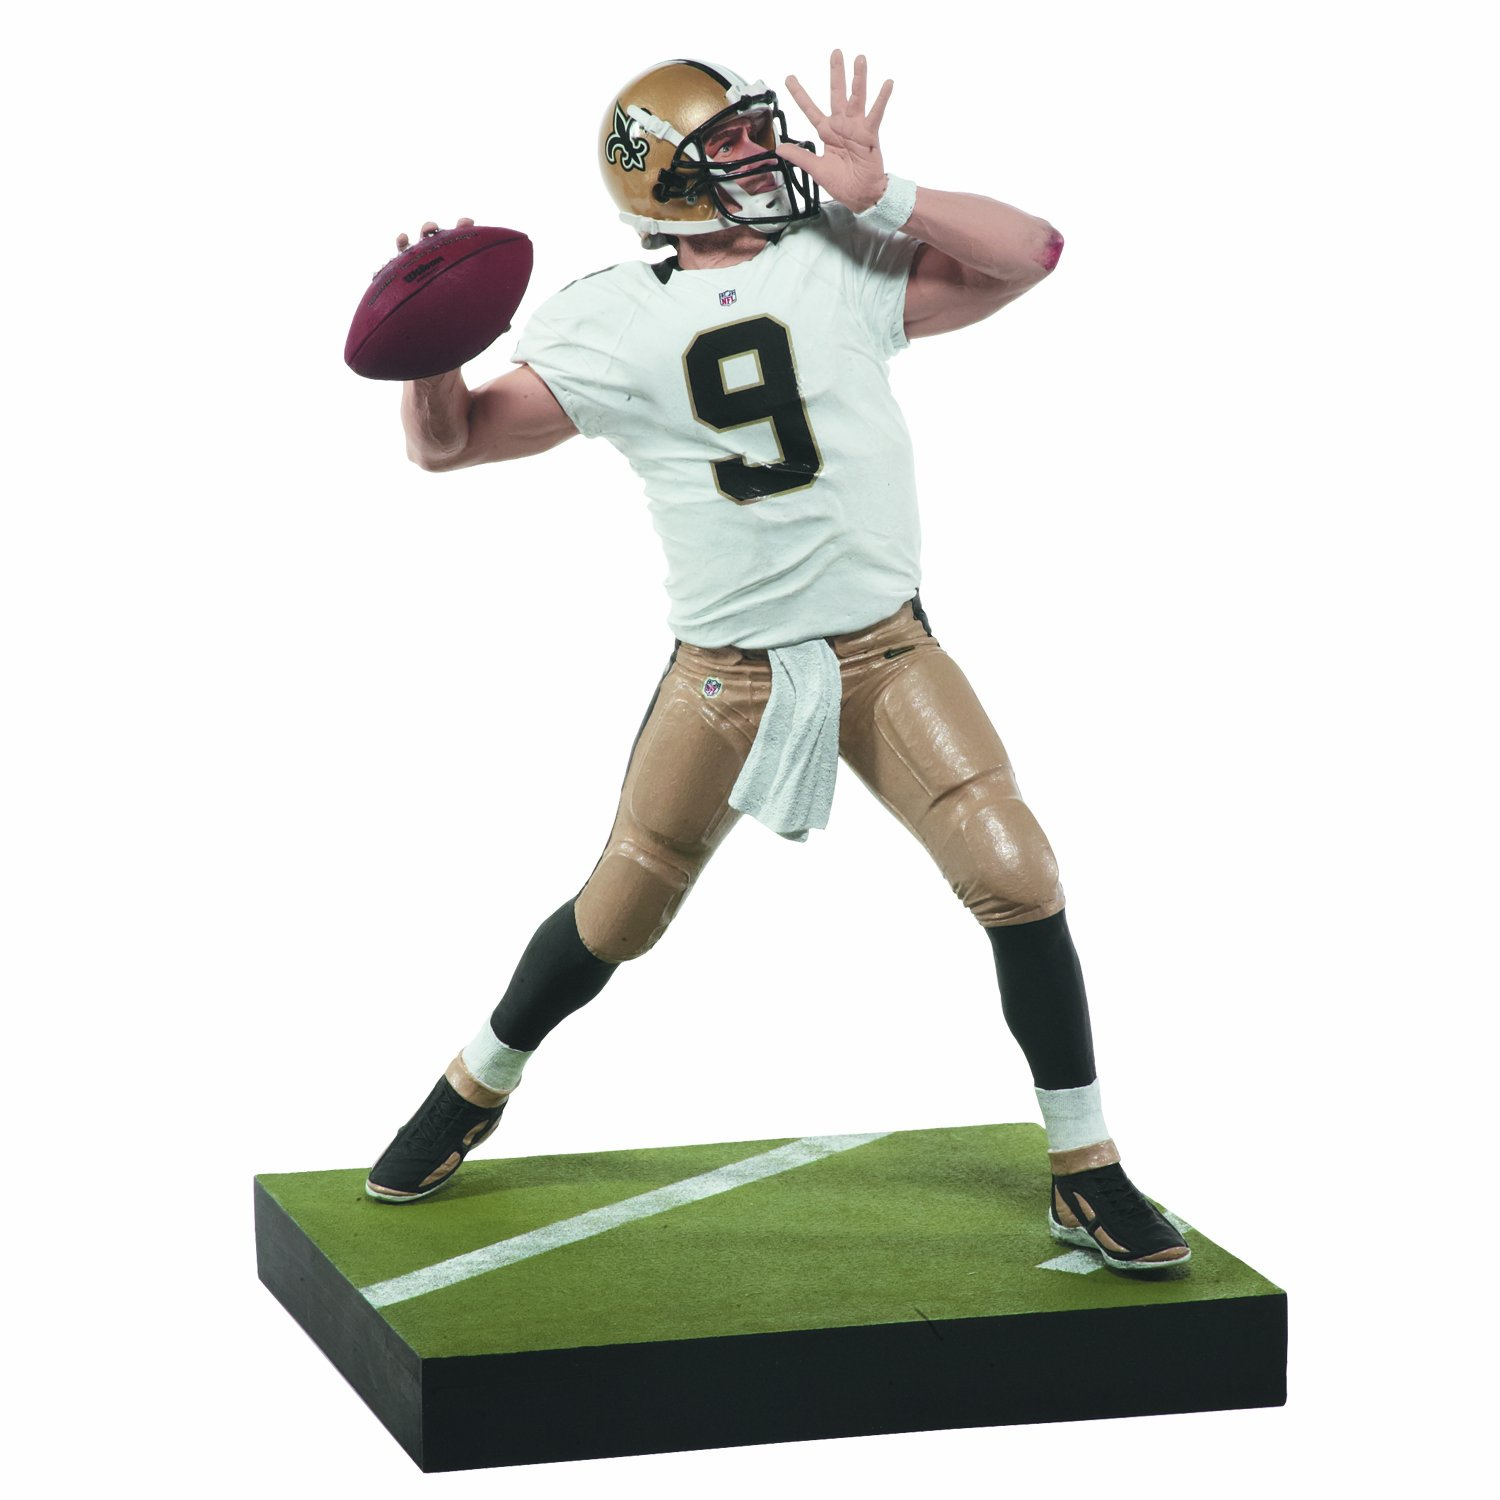 Amazon McFarlane Toys NFL Series 31 Drew Brees Action Figure